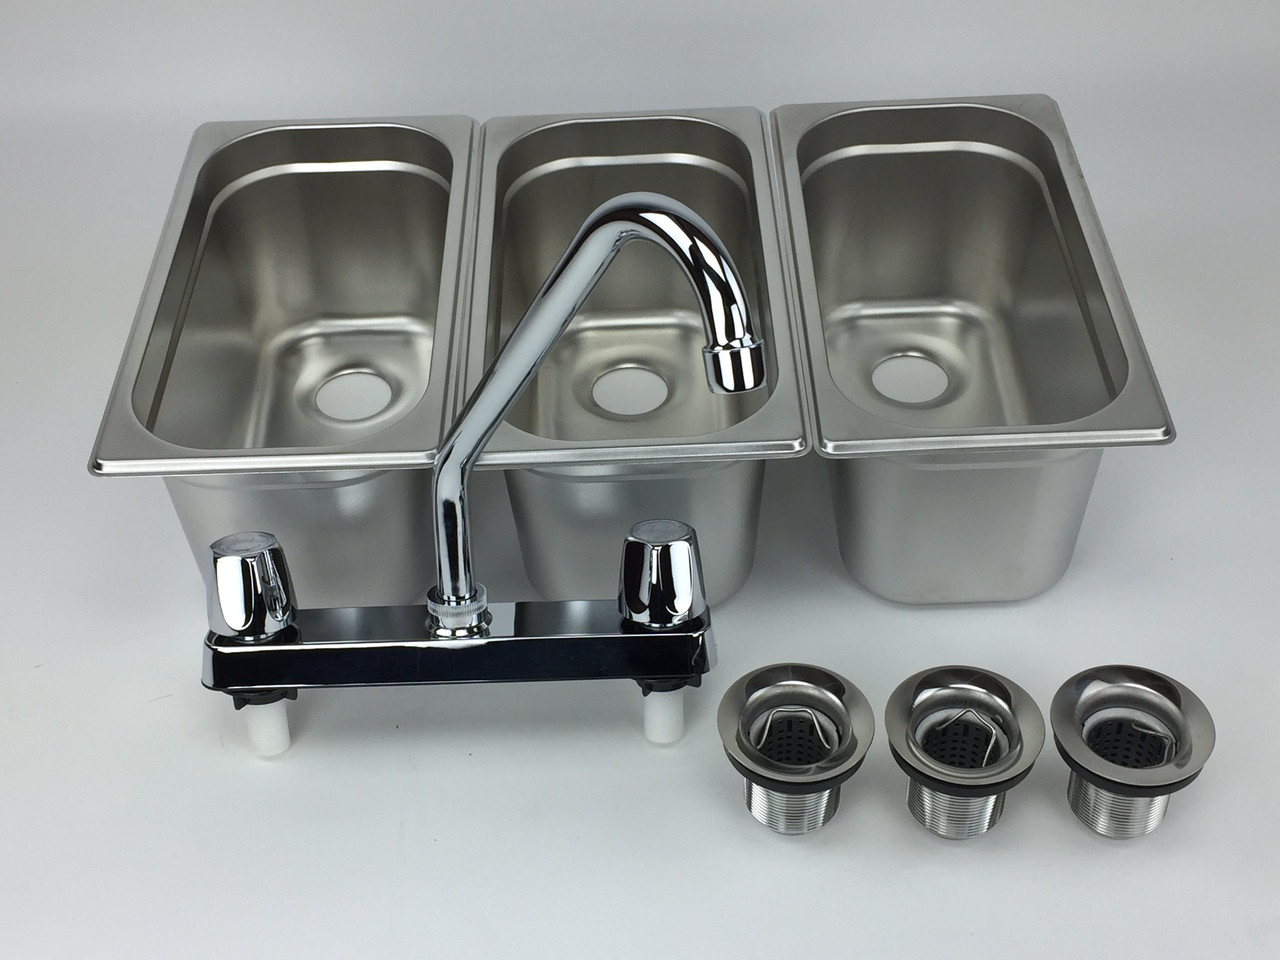 4 basin sink with faucets angled view